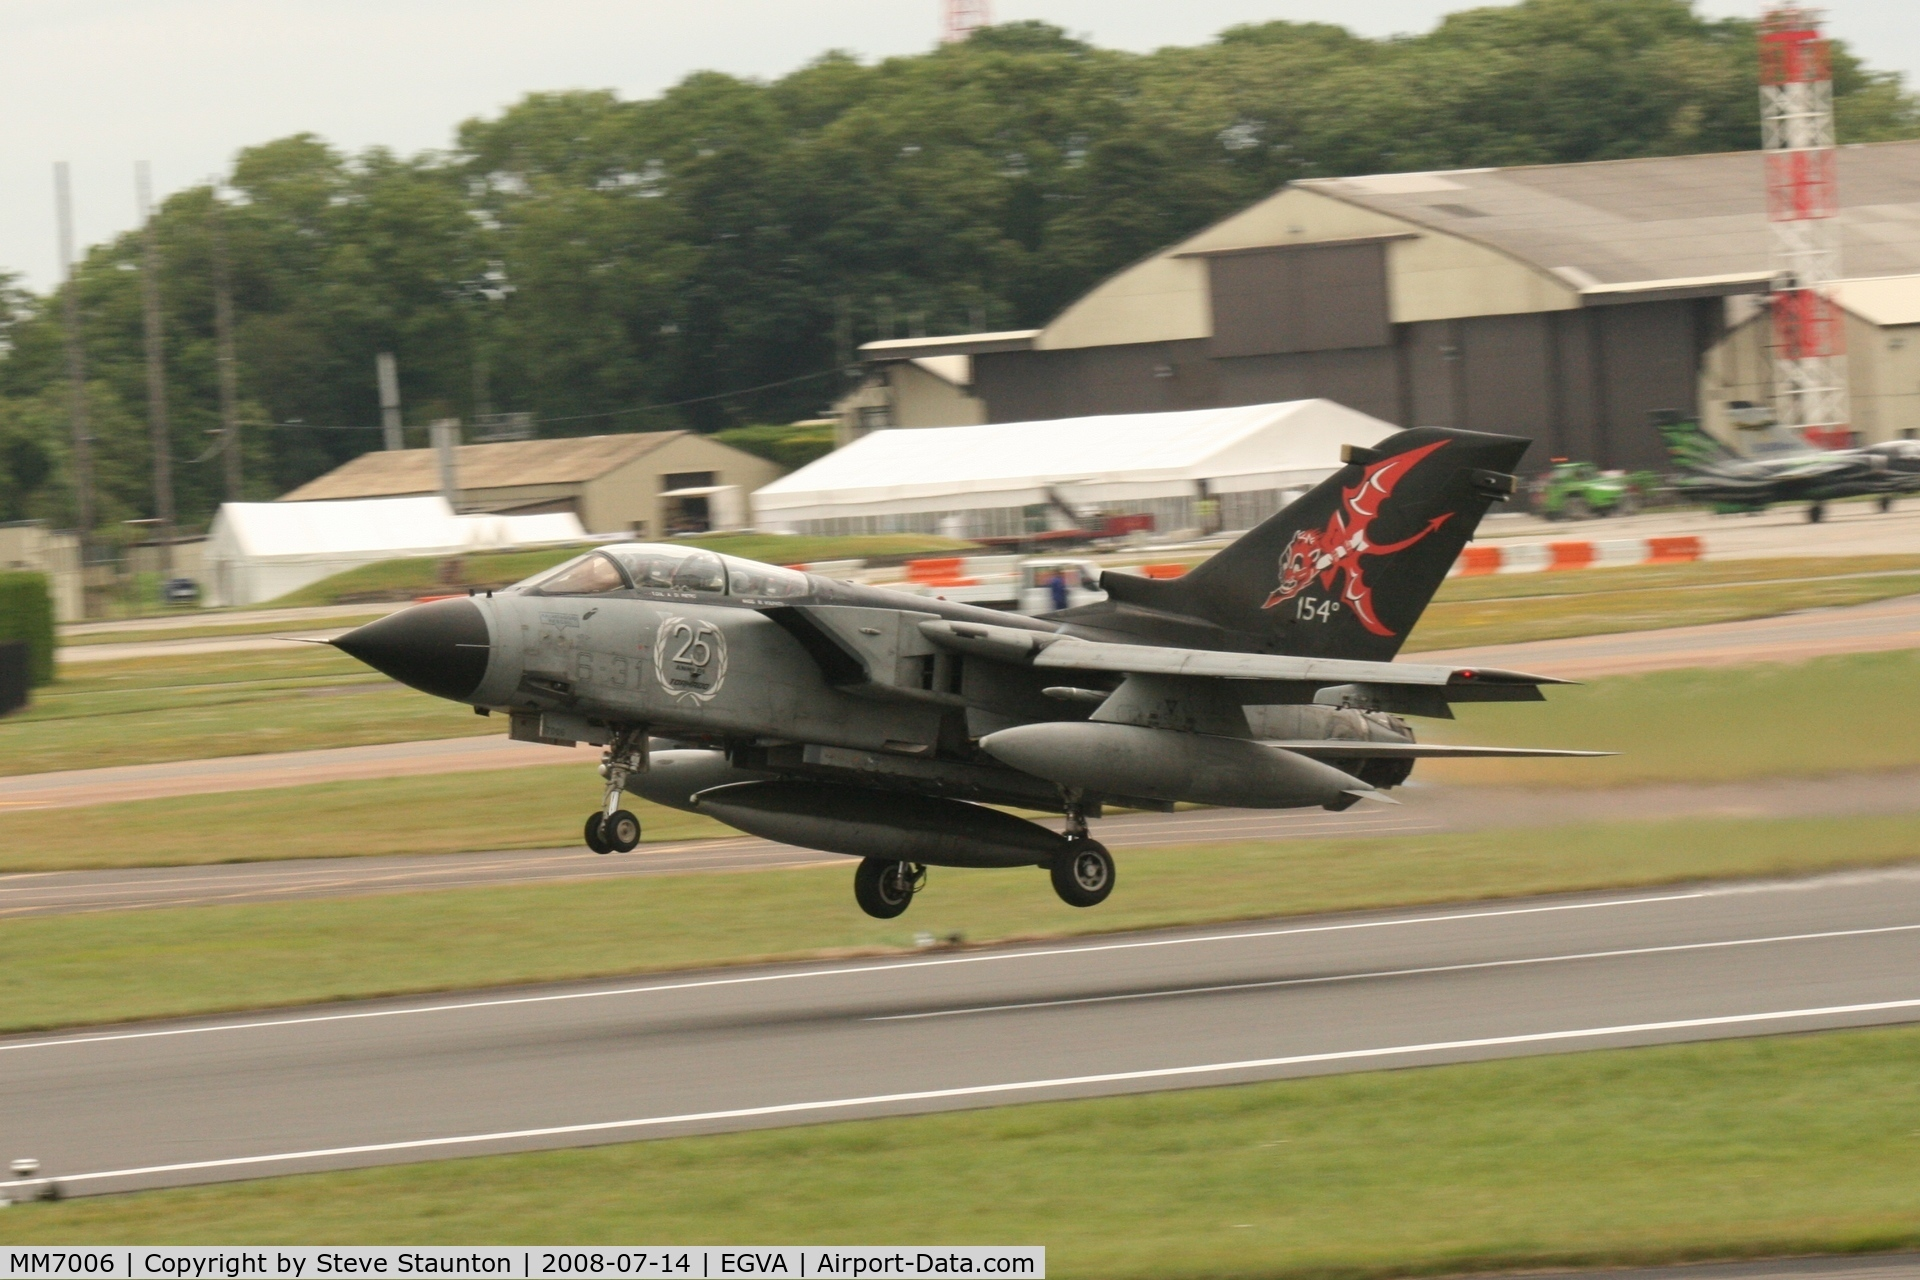 MM7006, 1982 Panavia Tornado IDS C/N 102/IS005/5008, Taken at the Royal International Air Tattoo 2008 during arrivals and departures (show days cancelled due to bad weather)